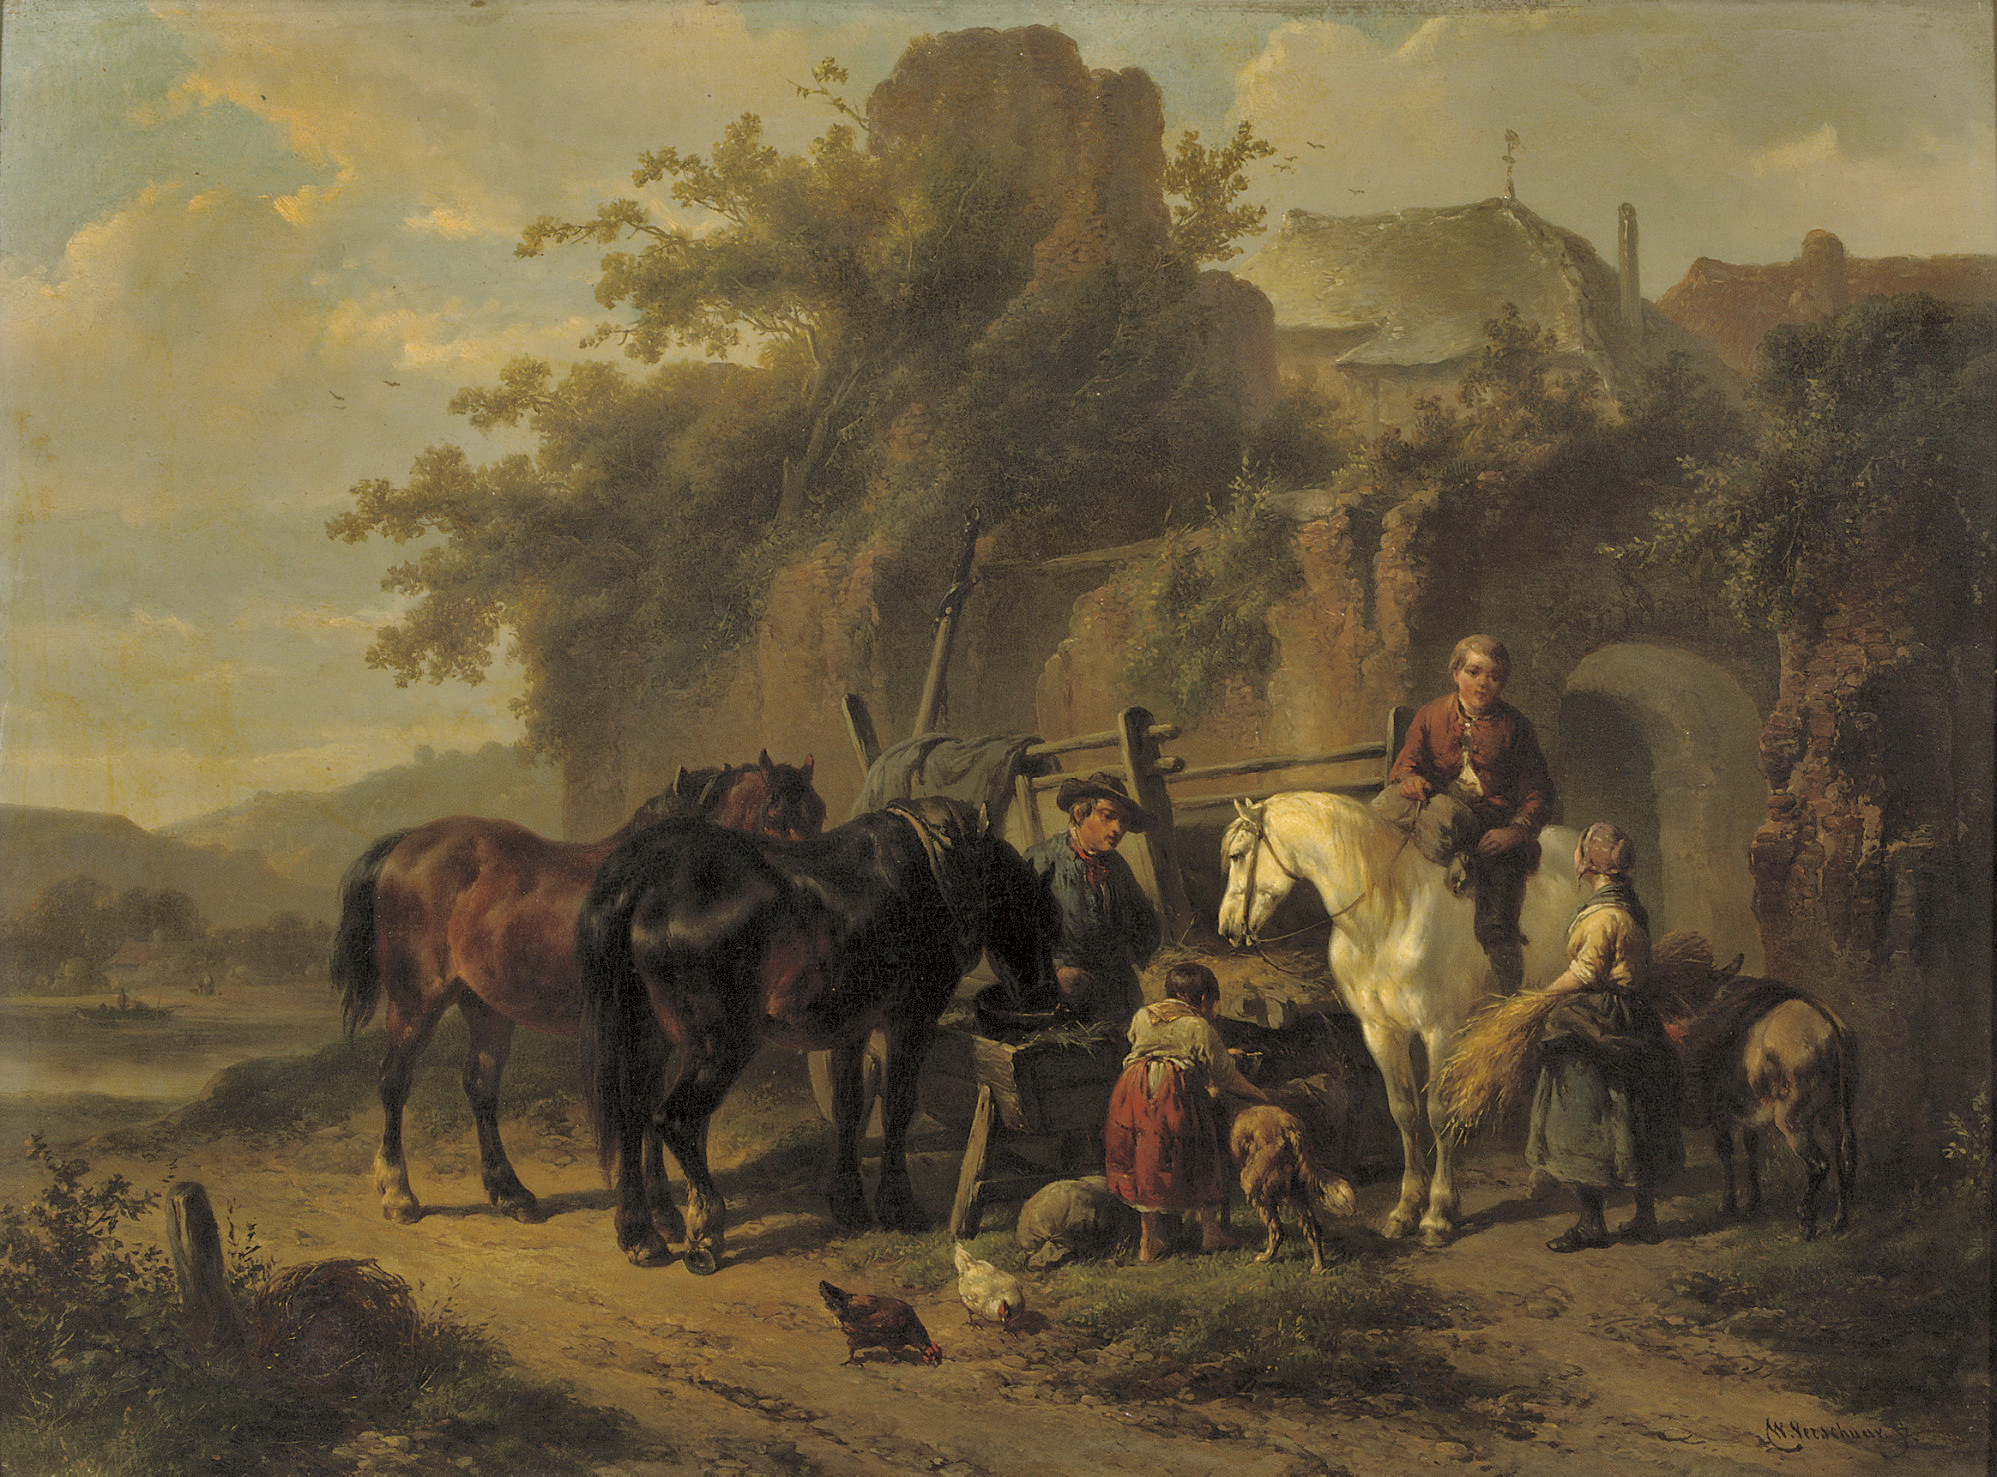 Feeding the horses by an old town wall